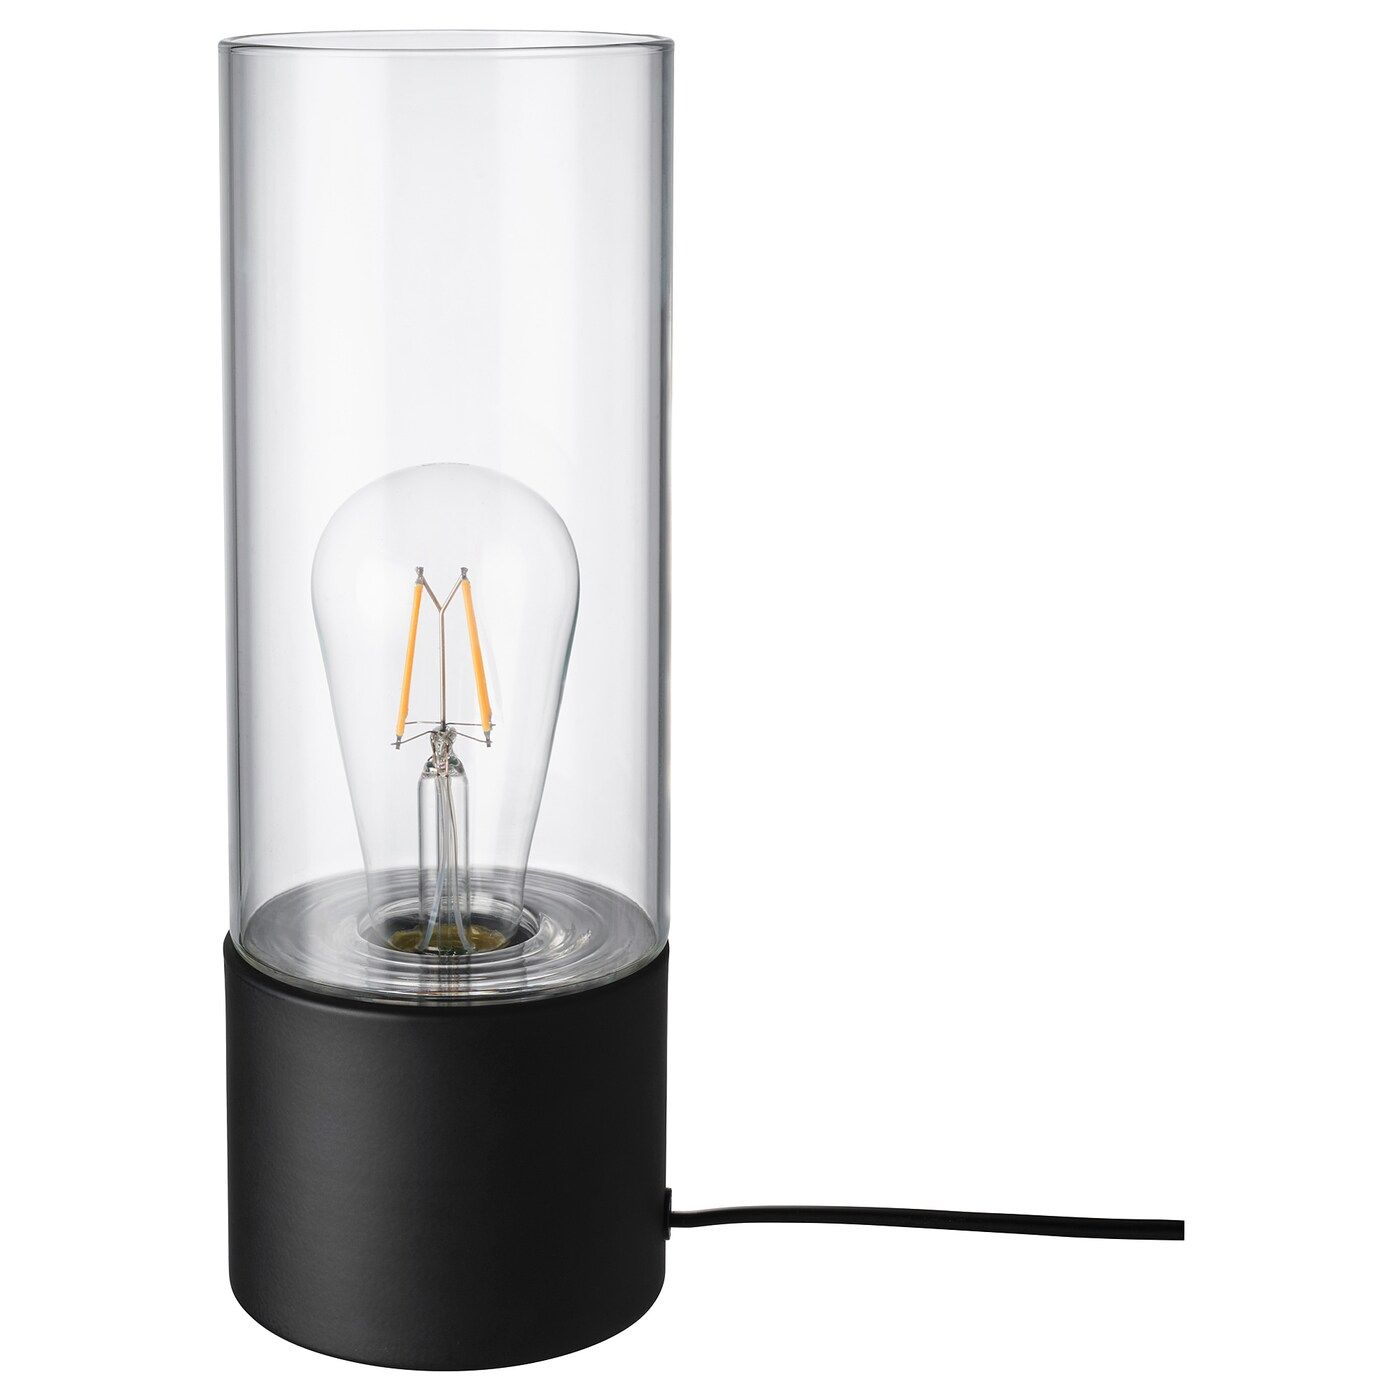 Mackebo Lampe De Table In 2020 Black Table Lamps Table Lamp Clear Glass